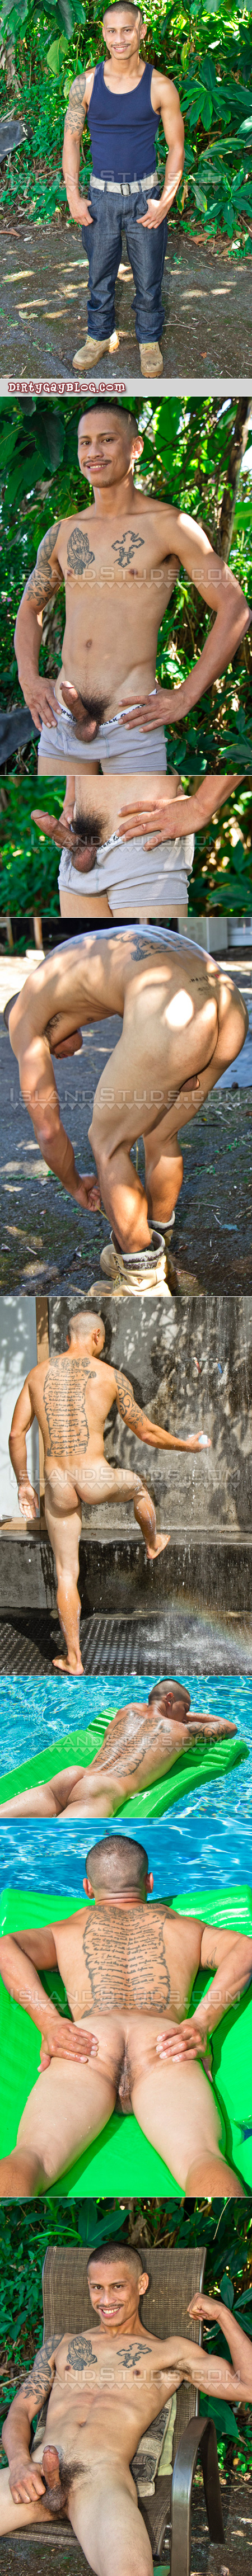 Fit Asian stud stripping naked outside and jacking off.